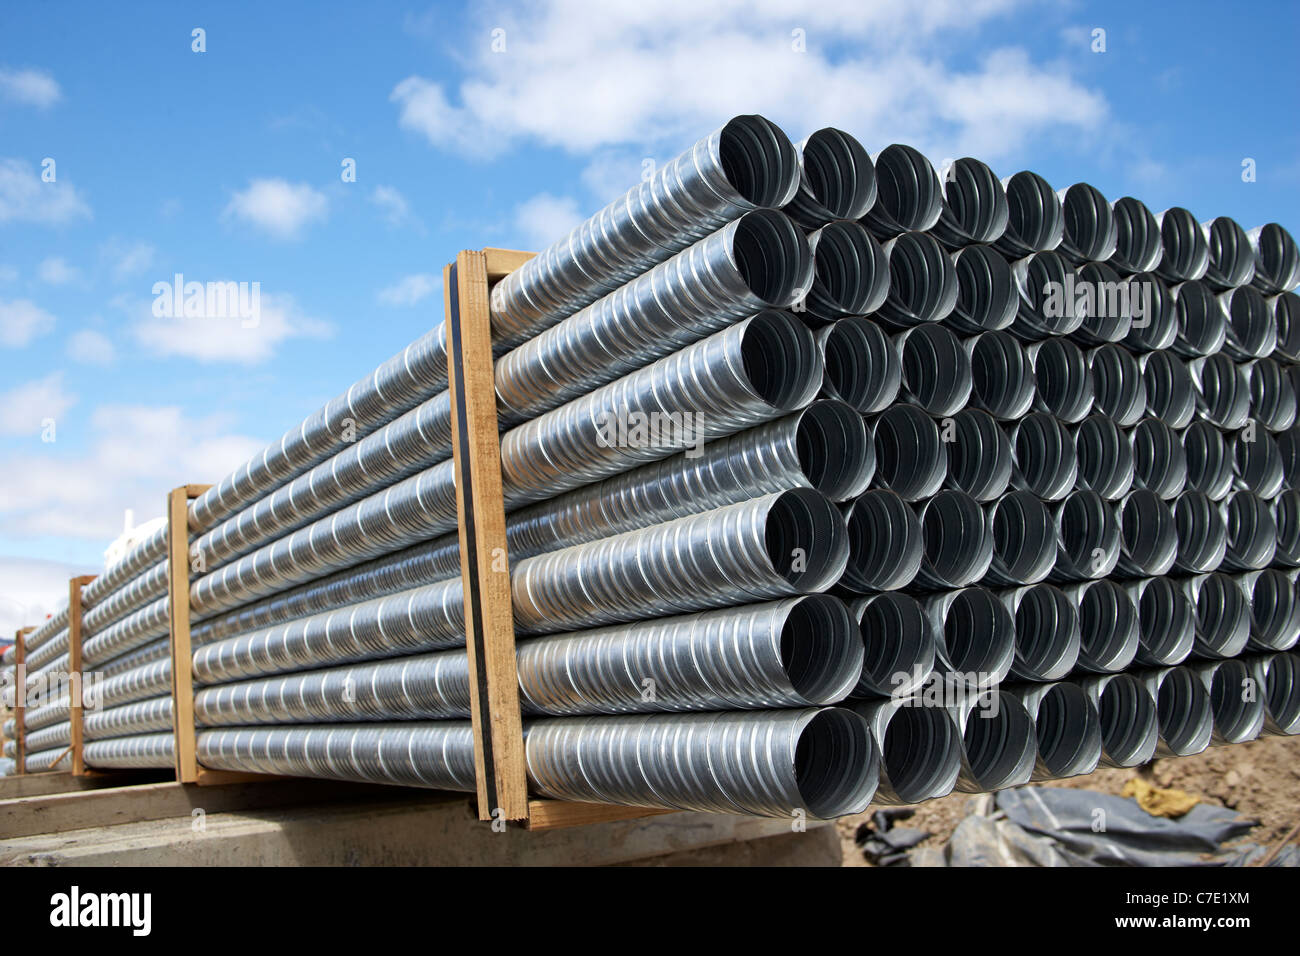 Galvanized steel pipes stacked at construction site - Stock Image